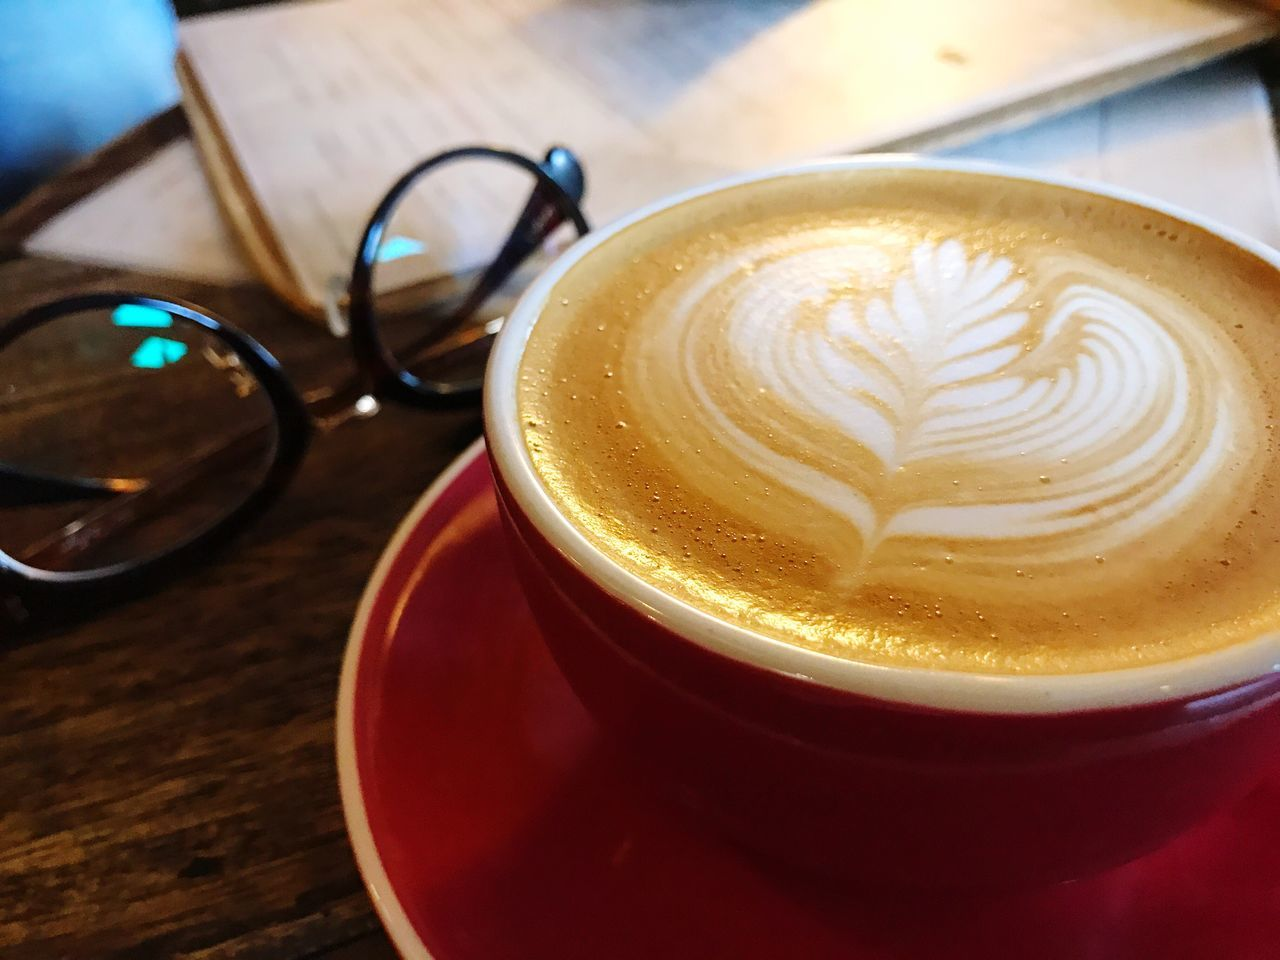 Daily Life | great conversation over Coffee | Cafe Culture